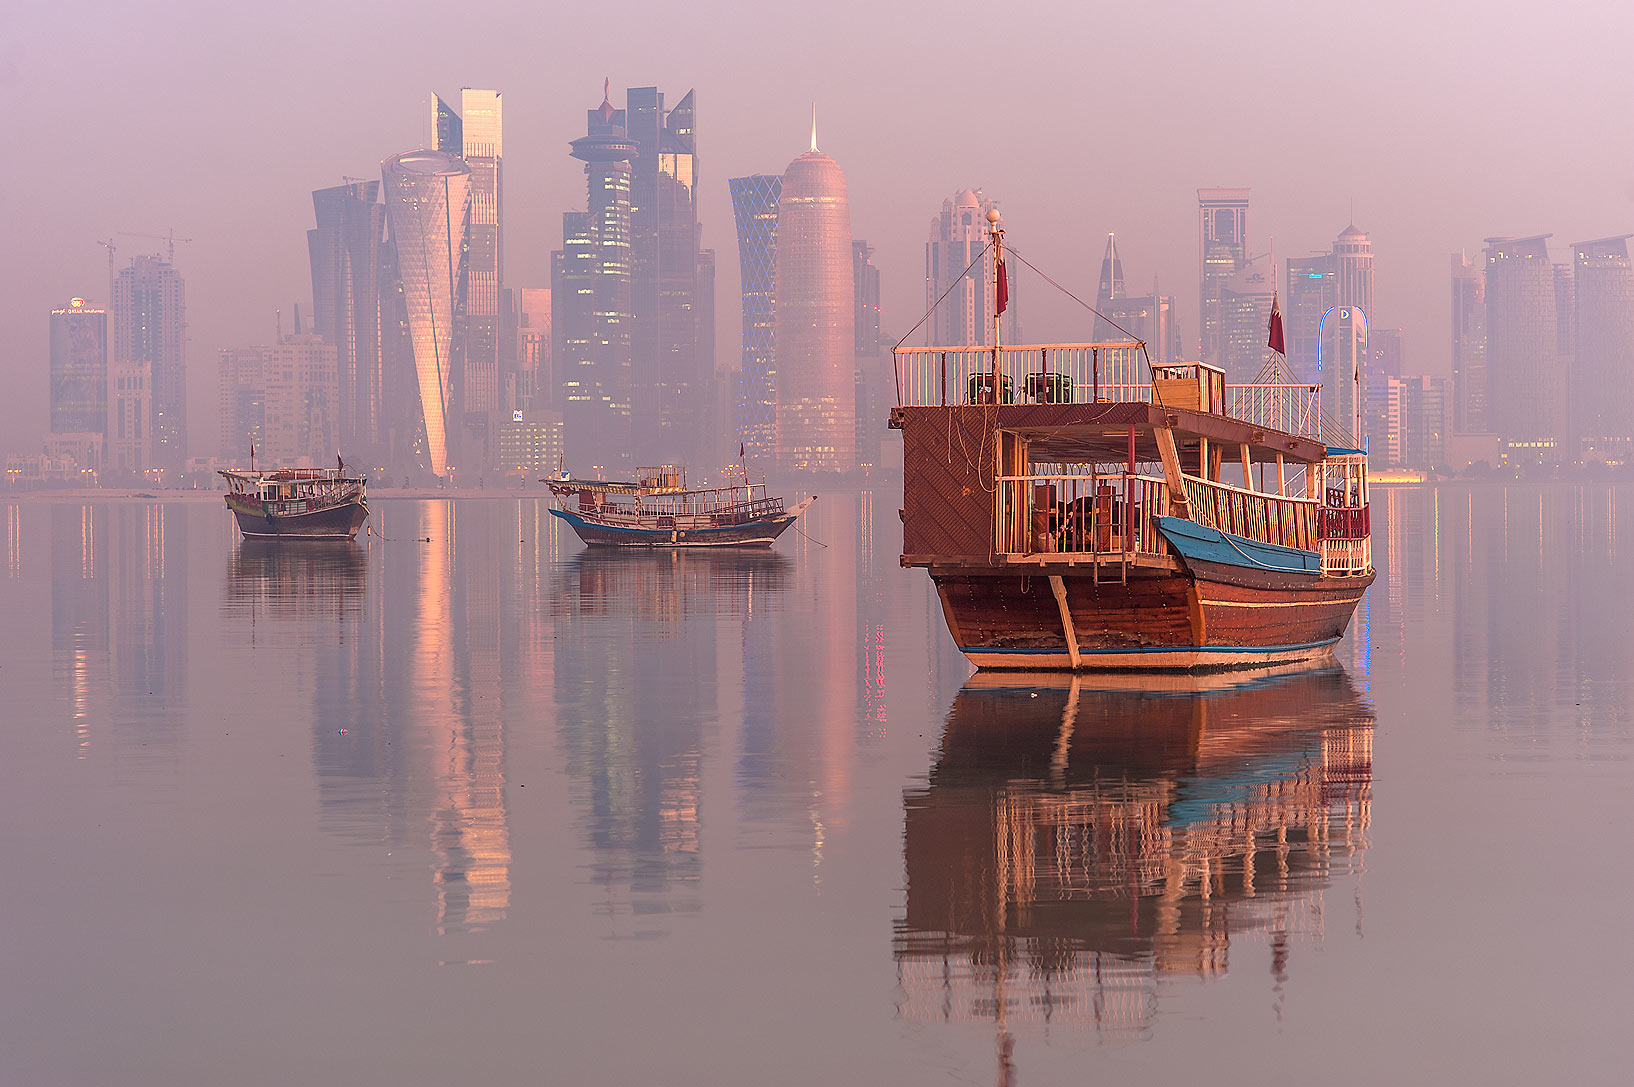 Reflections of dhow boats and West Bay towers from Corniche promenade in mist. Doha, Qatar